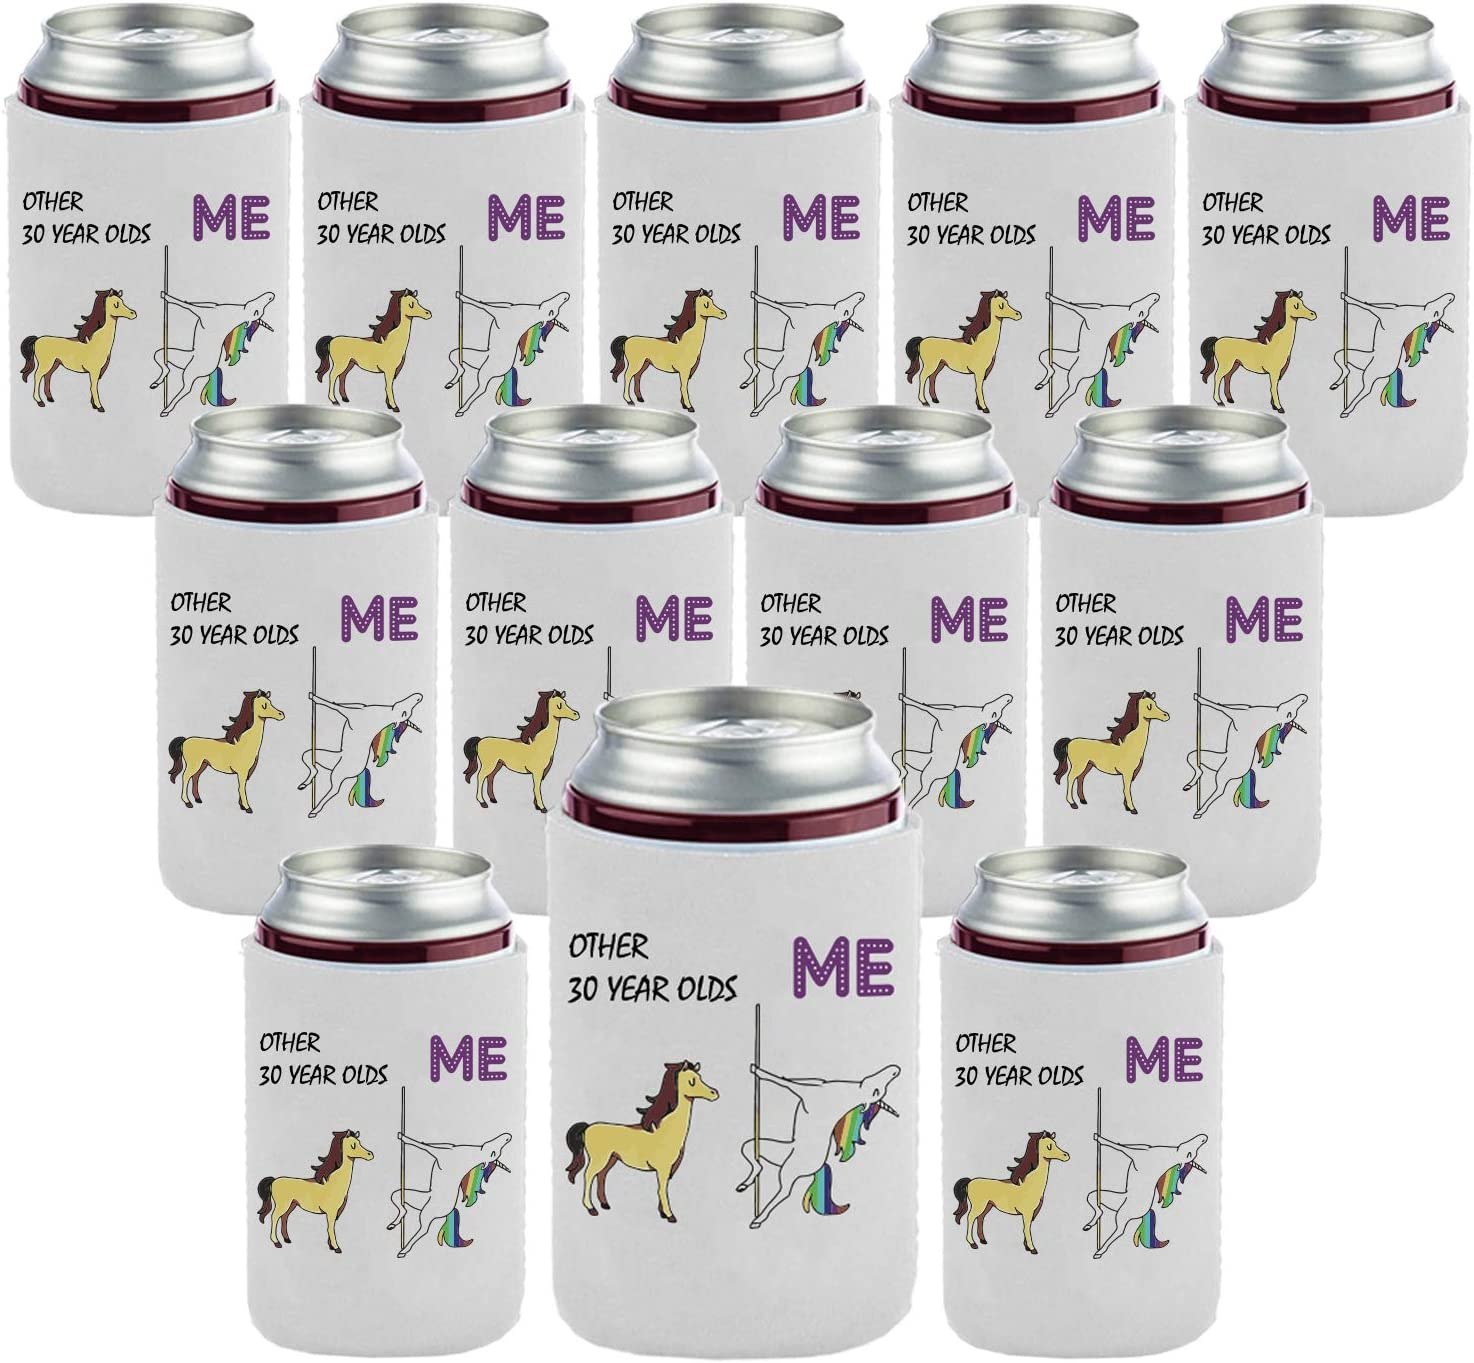 30th Birthday Gift Beer Coolie Beverage Can Coolers Funny Party Decoration Gifts - OTHER 30 YEAR OLDS - ME (12 Pack)